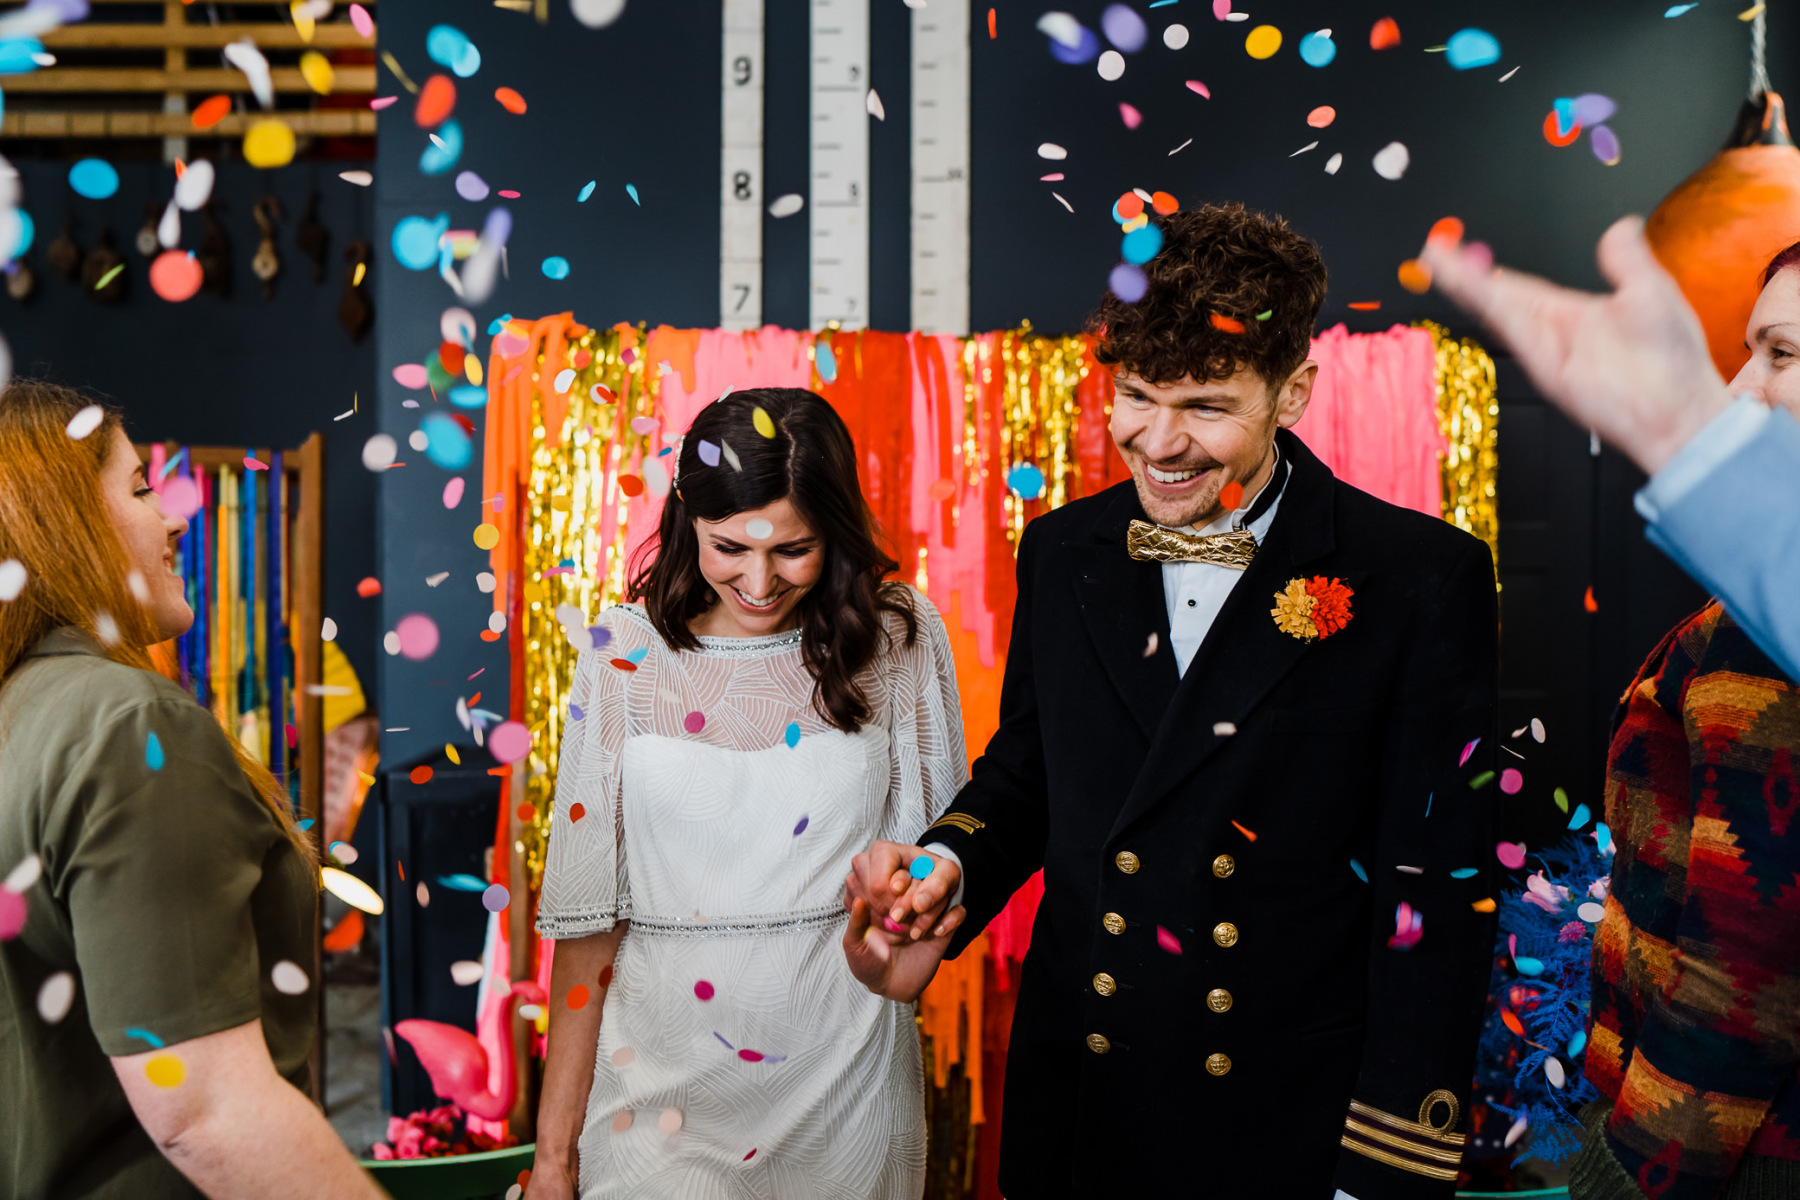 This wedding shoot was super bright, fun and kitschy, with bold decor and blooms